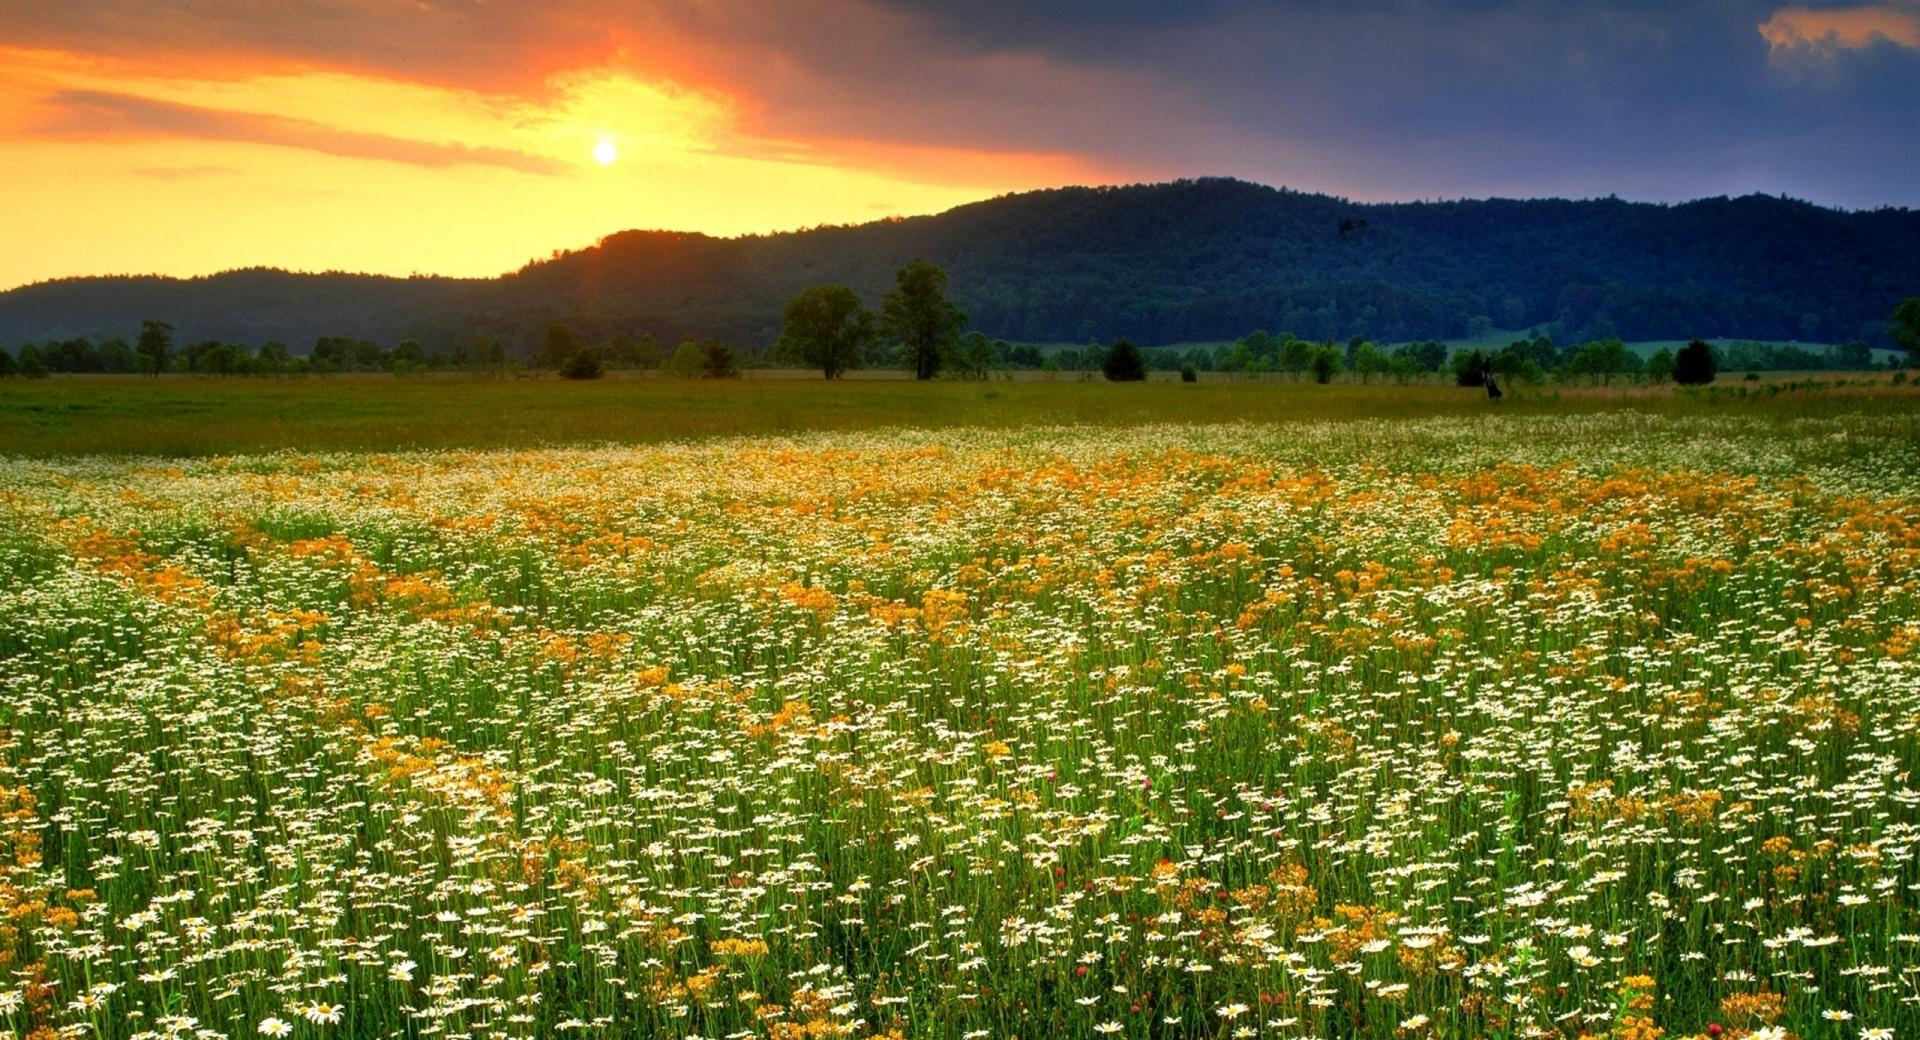 Daisies Field Landscape wallpapers HD quality